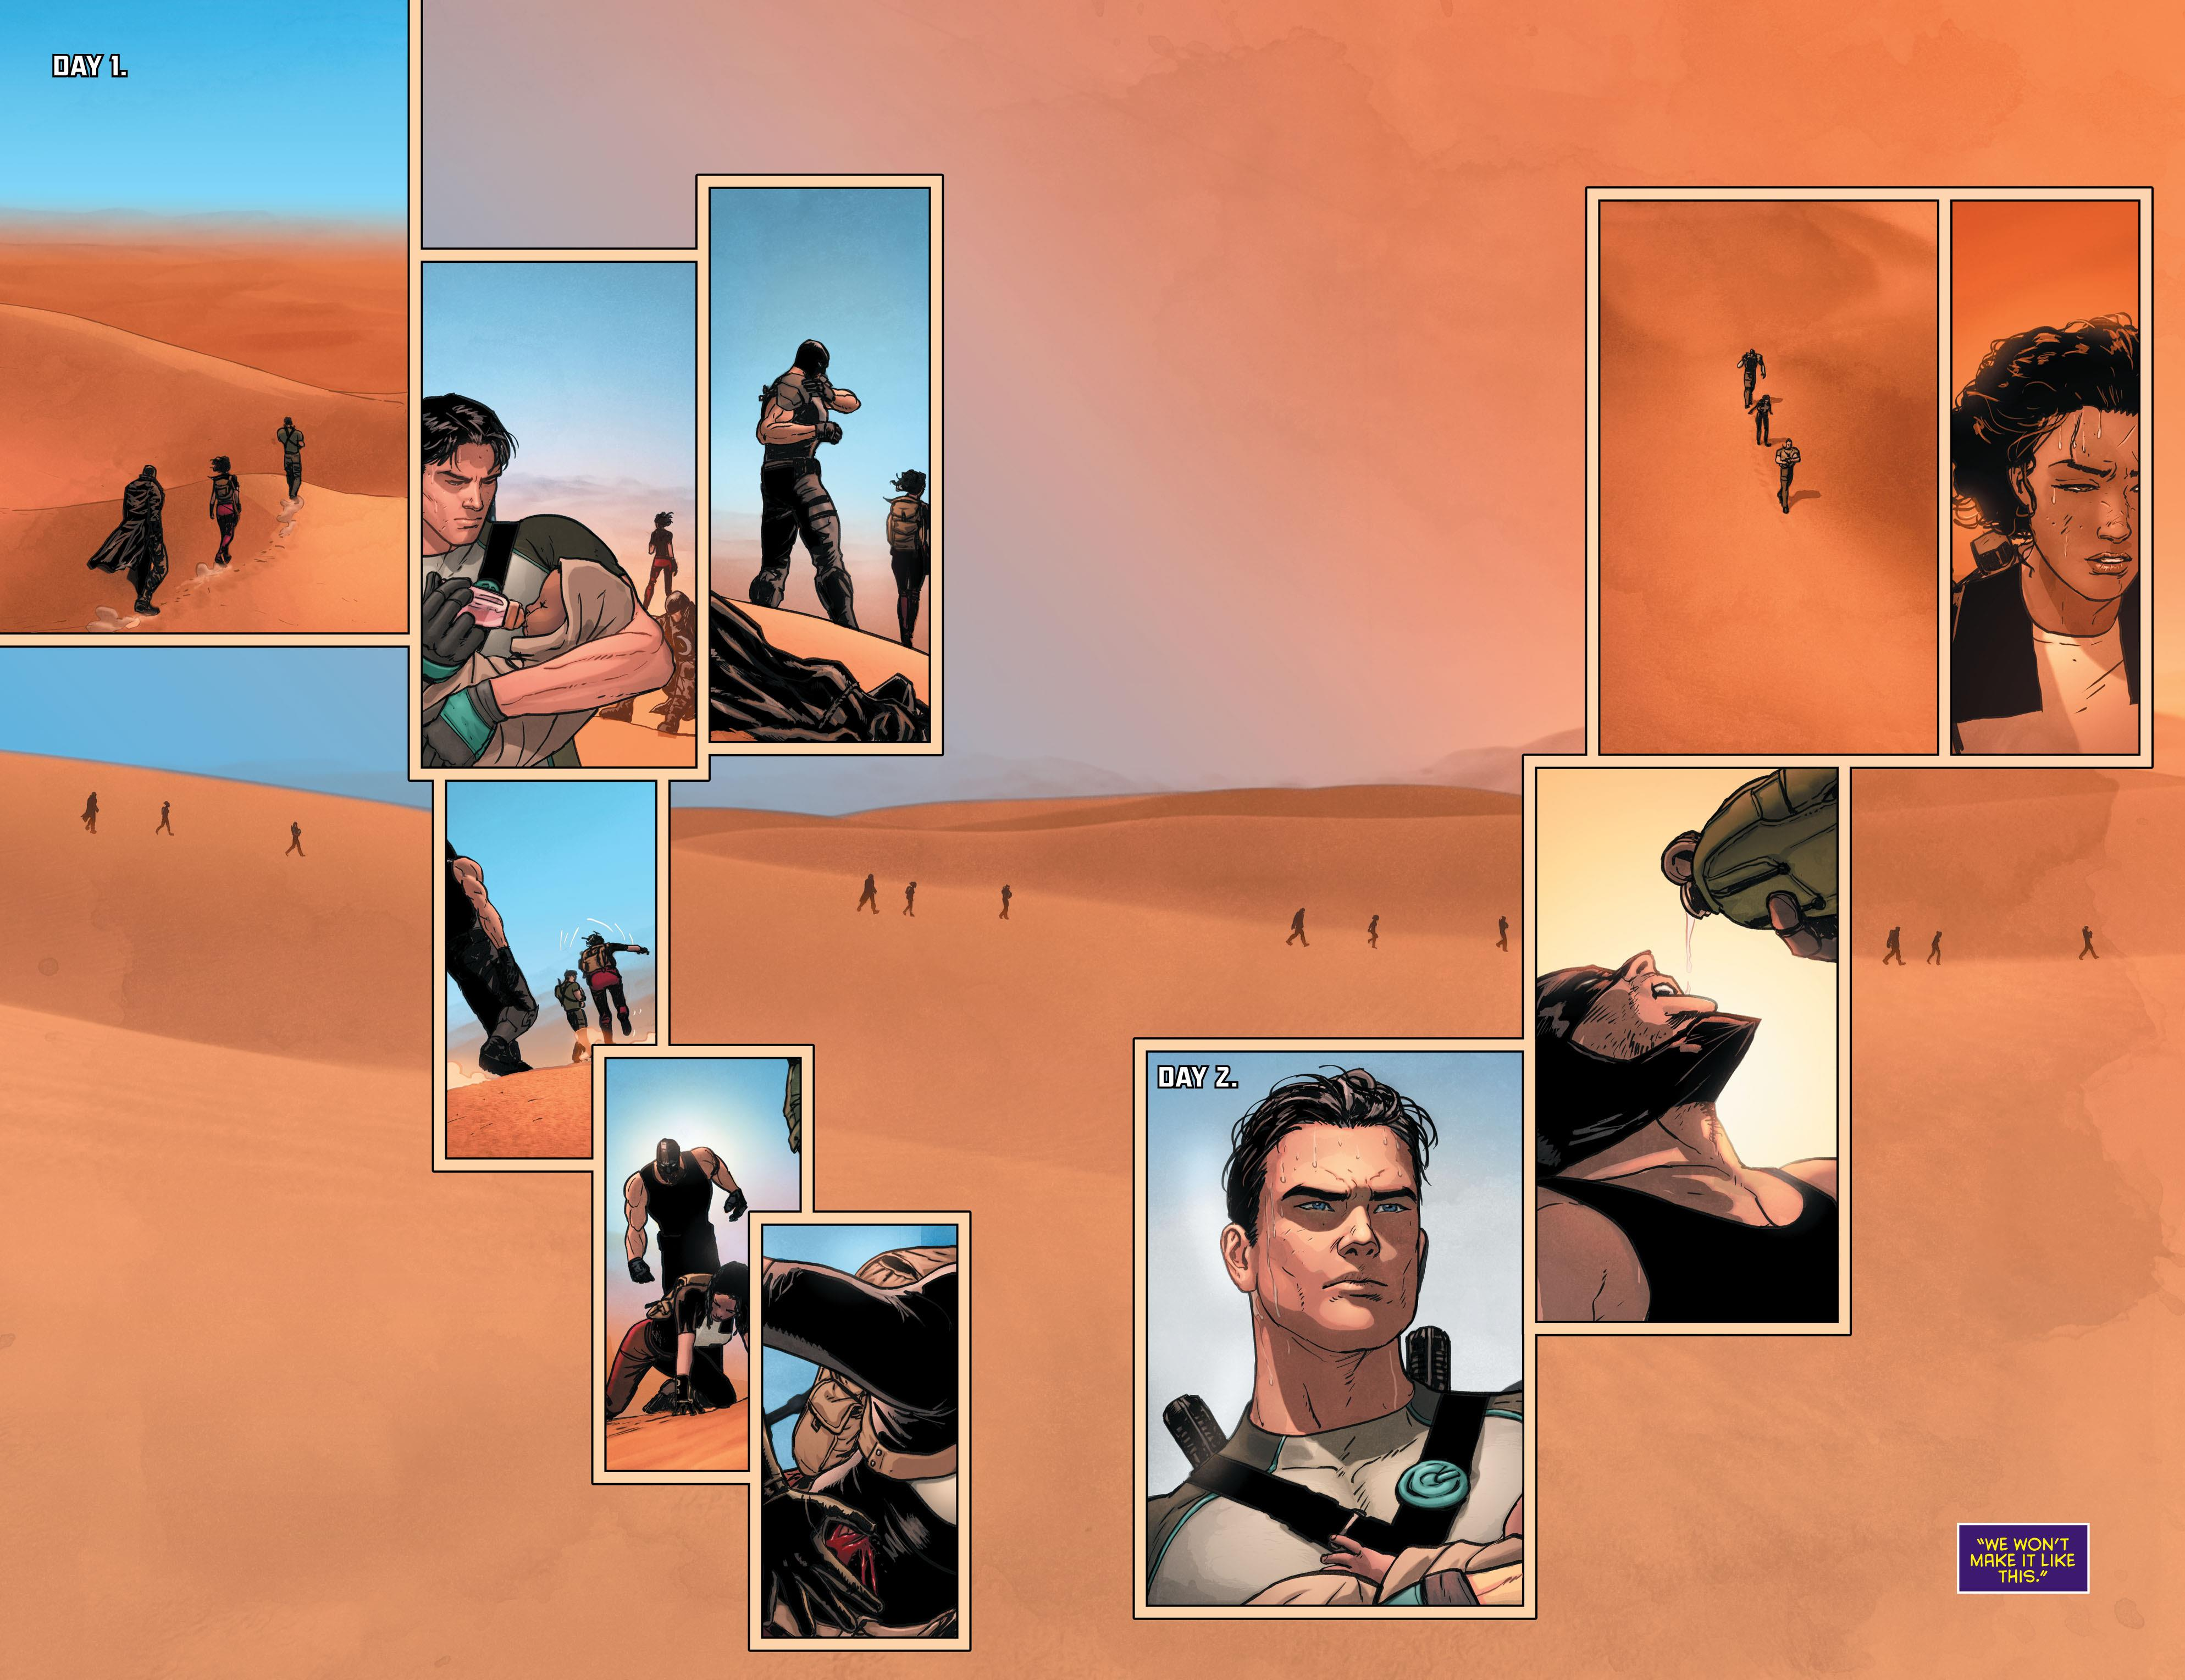 Grayson We All Die at Dawn review